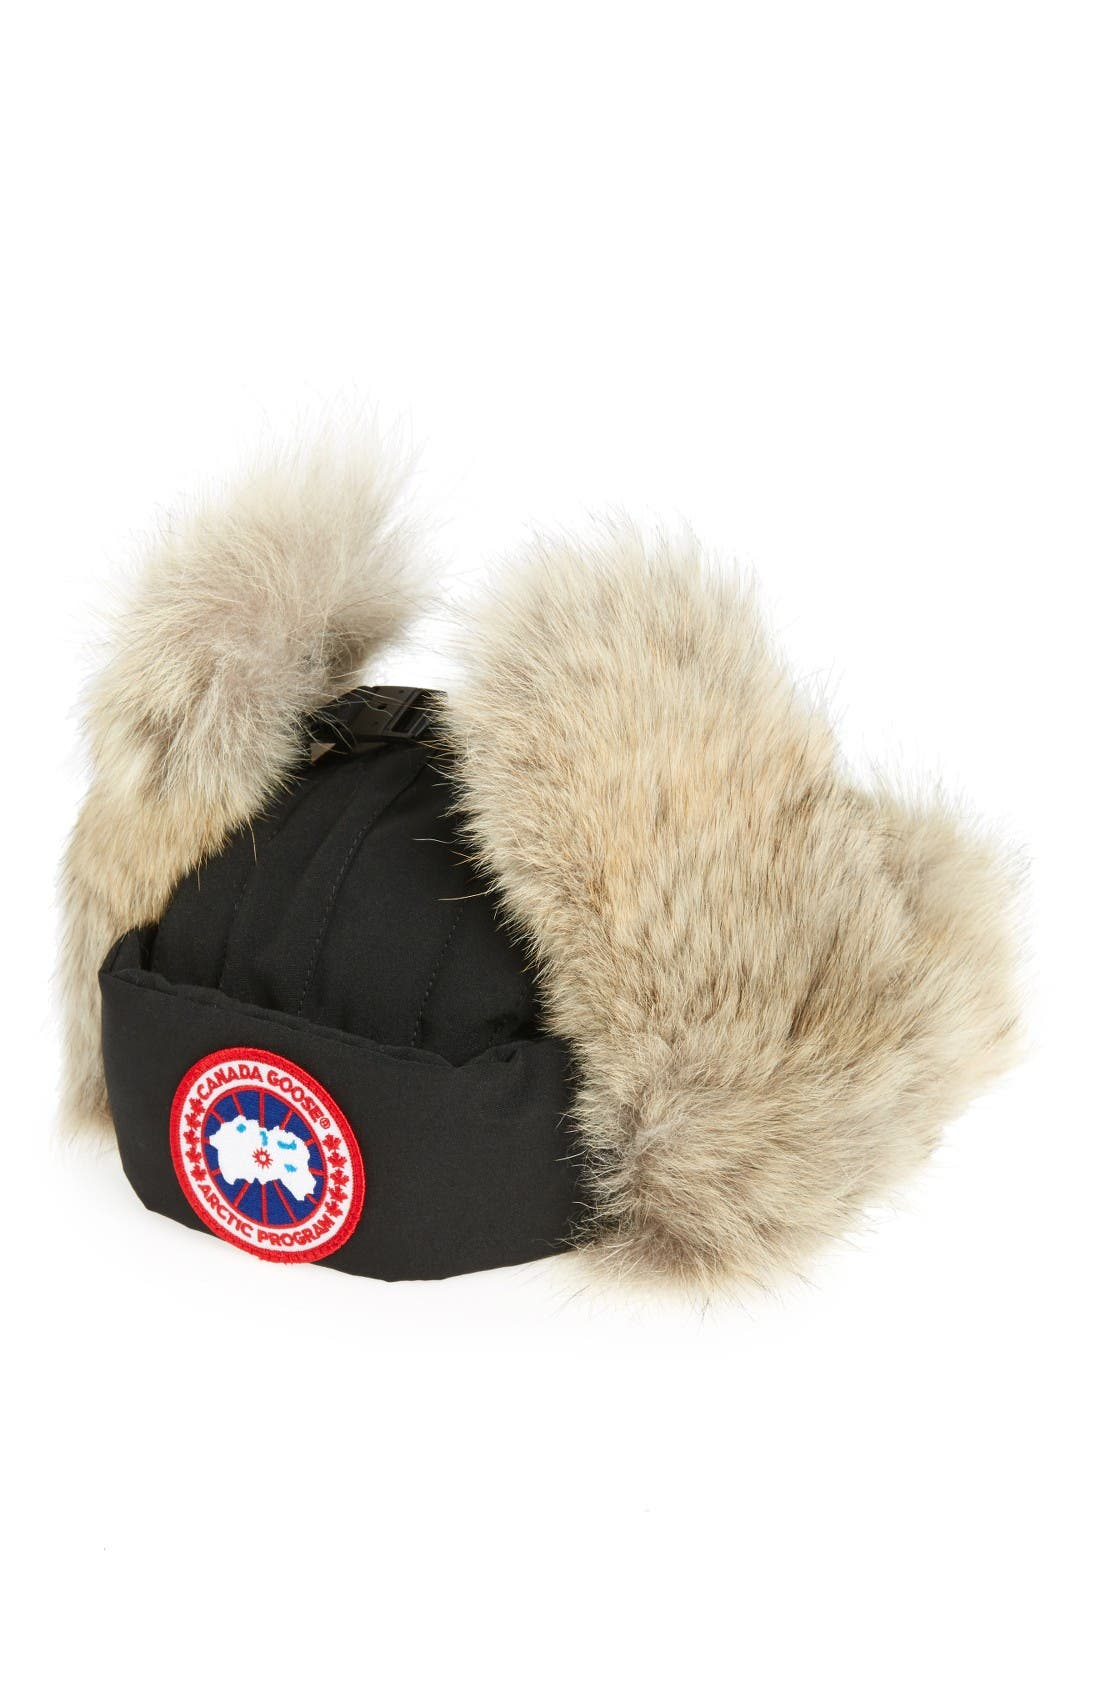 Canada Goose Down Fill Aviator Hat with Genuine Coyote Fur Trim